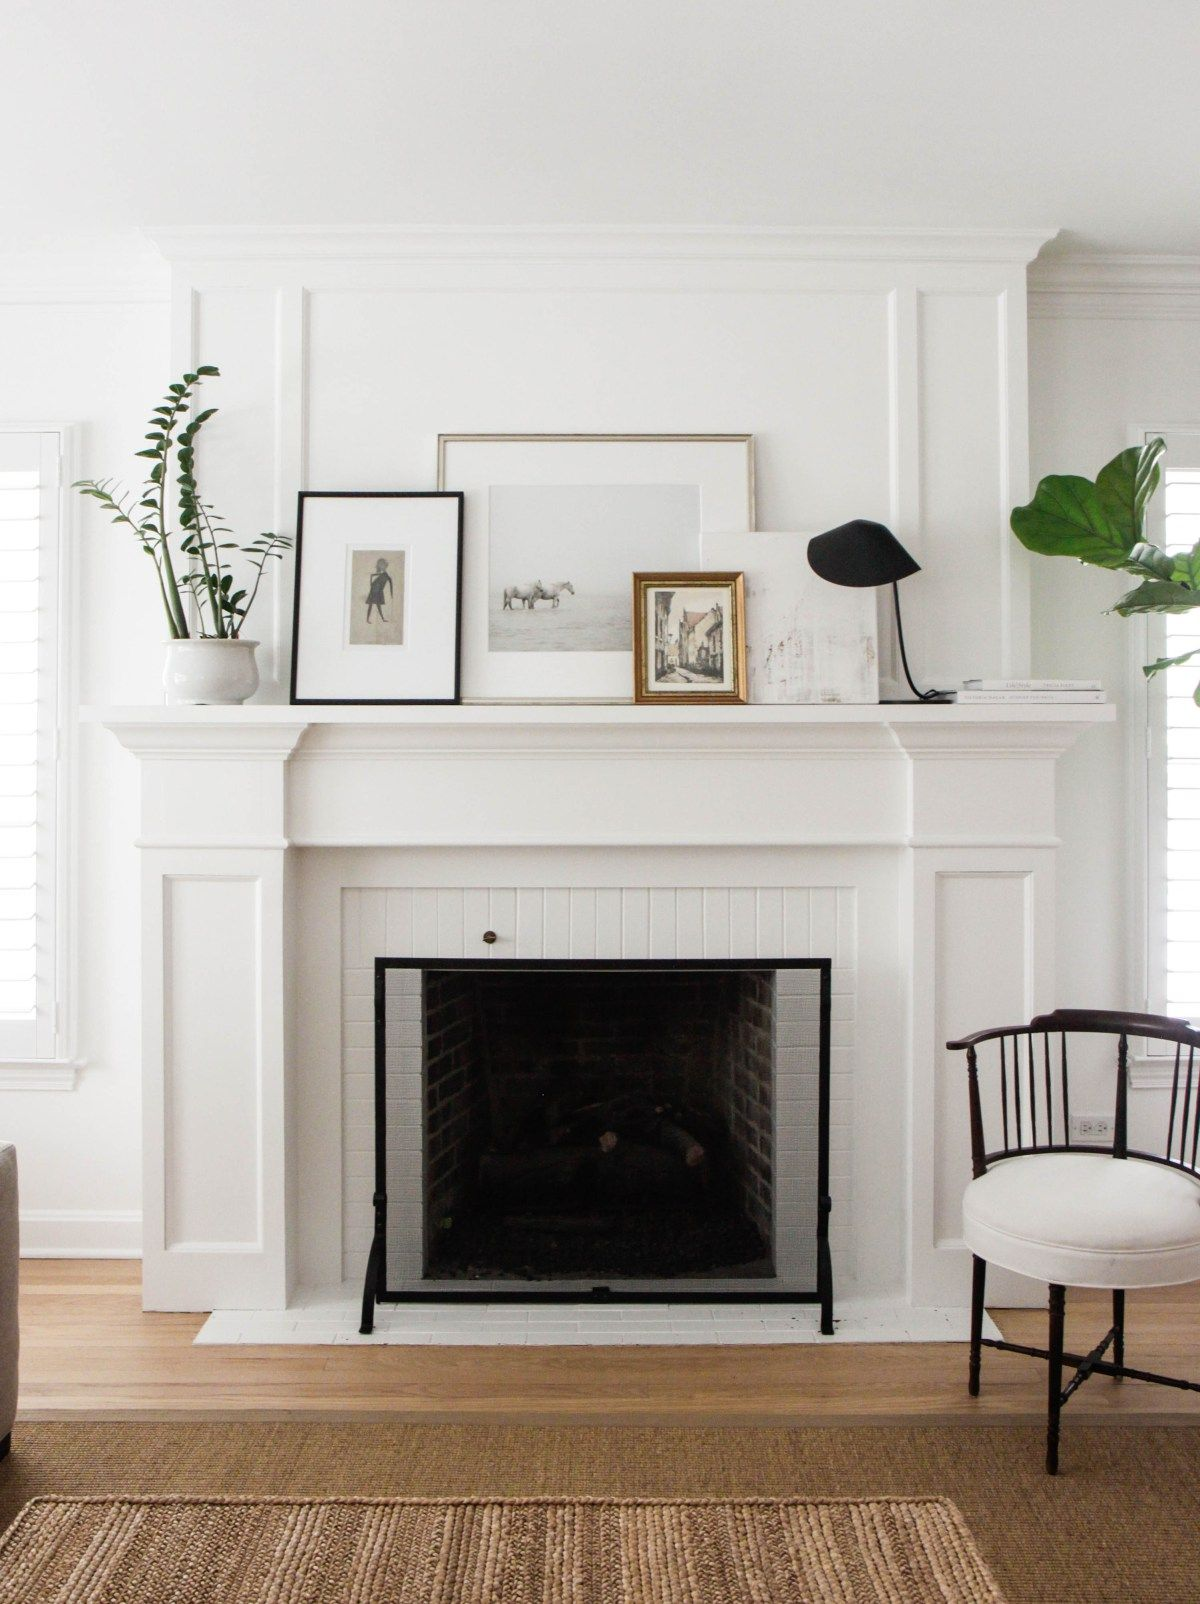 Mantel Styling with framed art photos Are